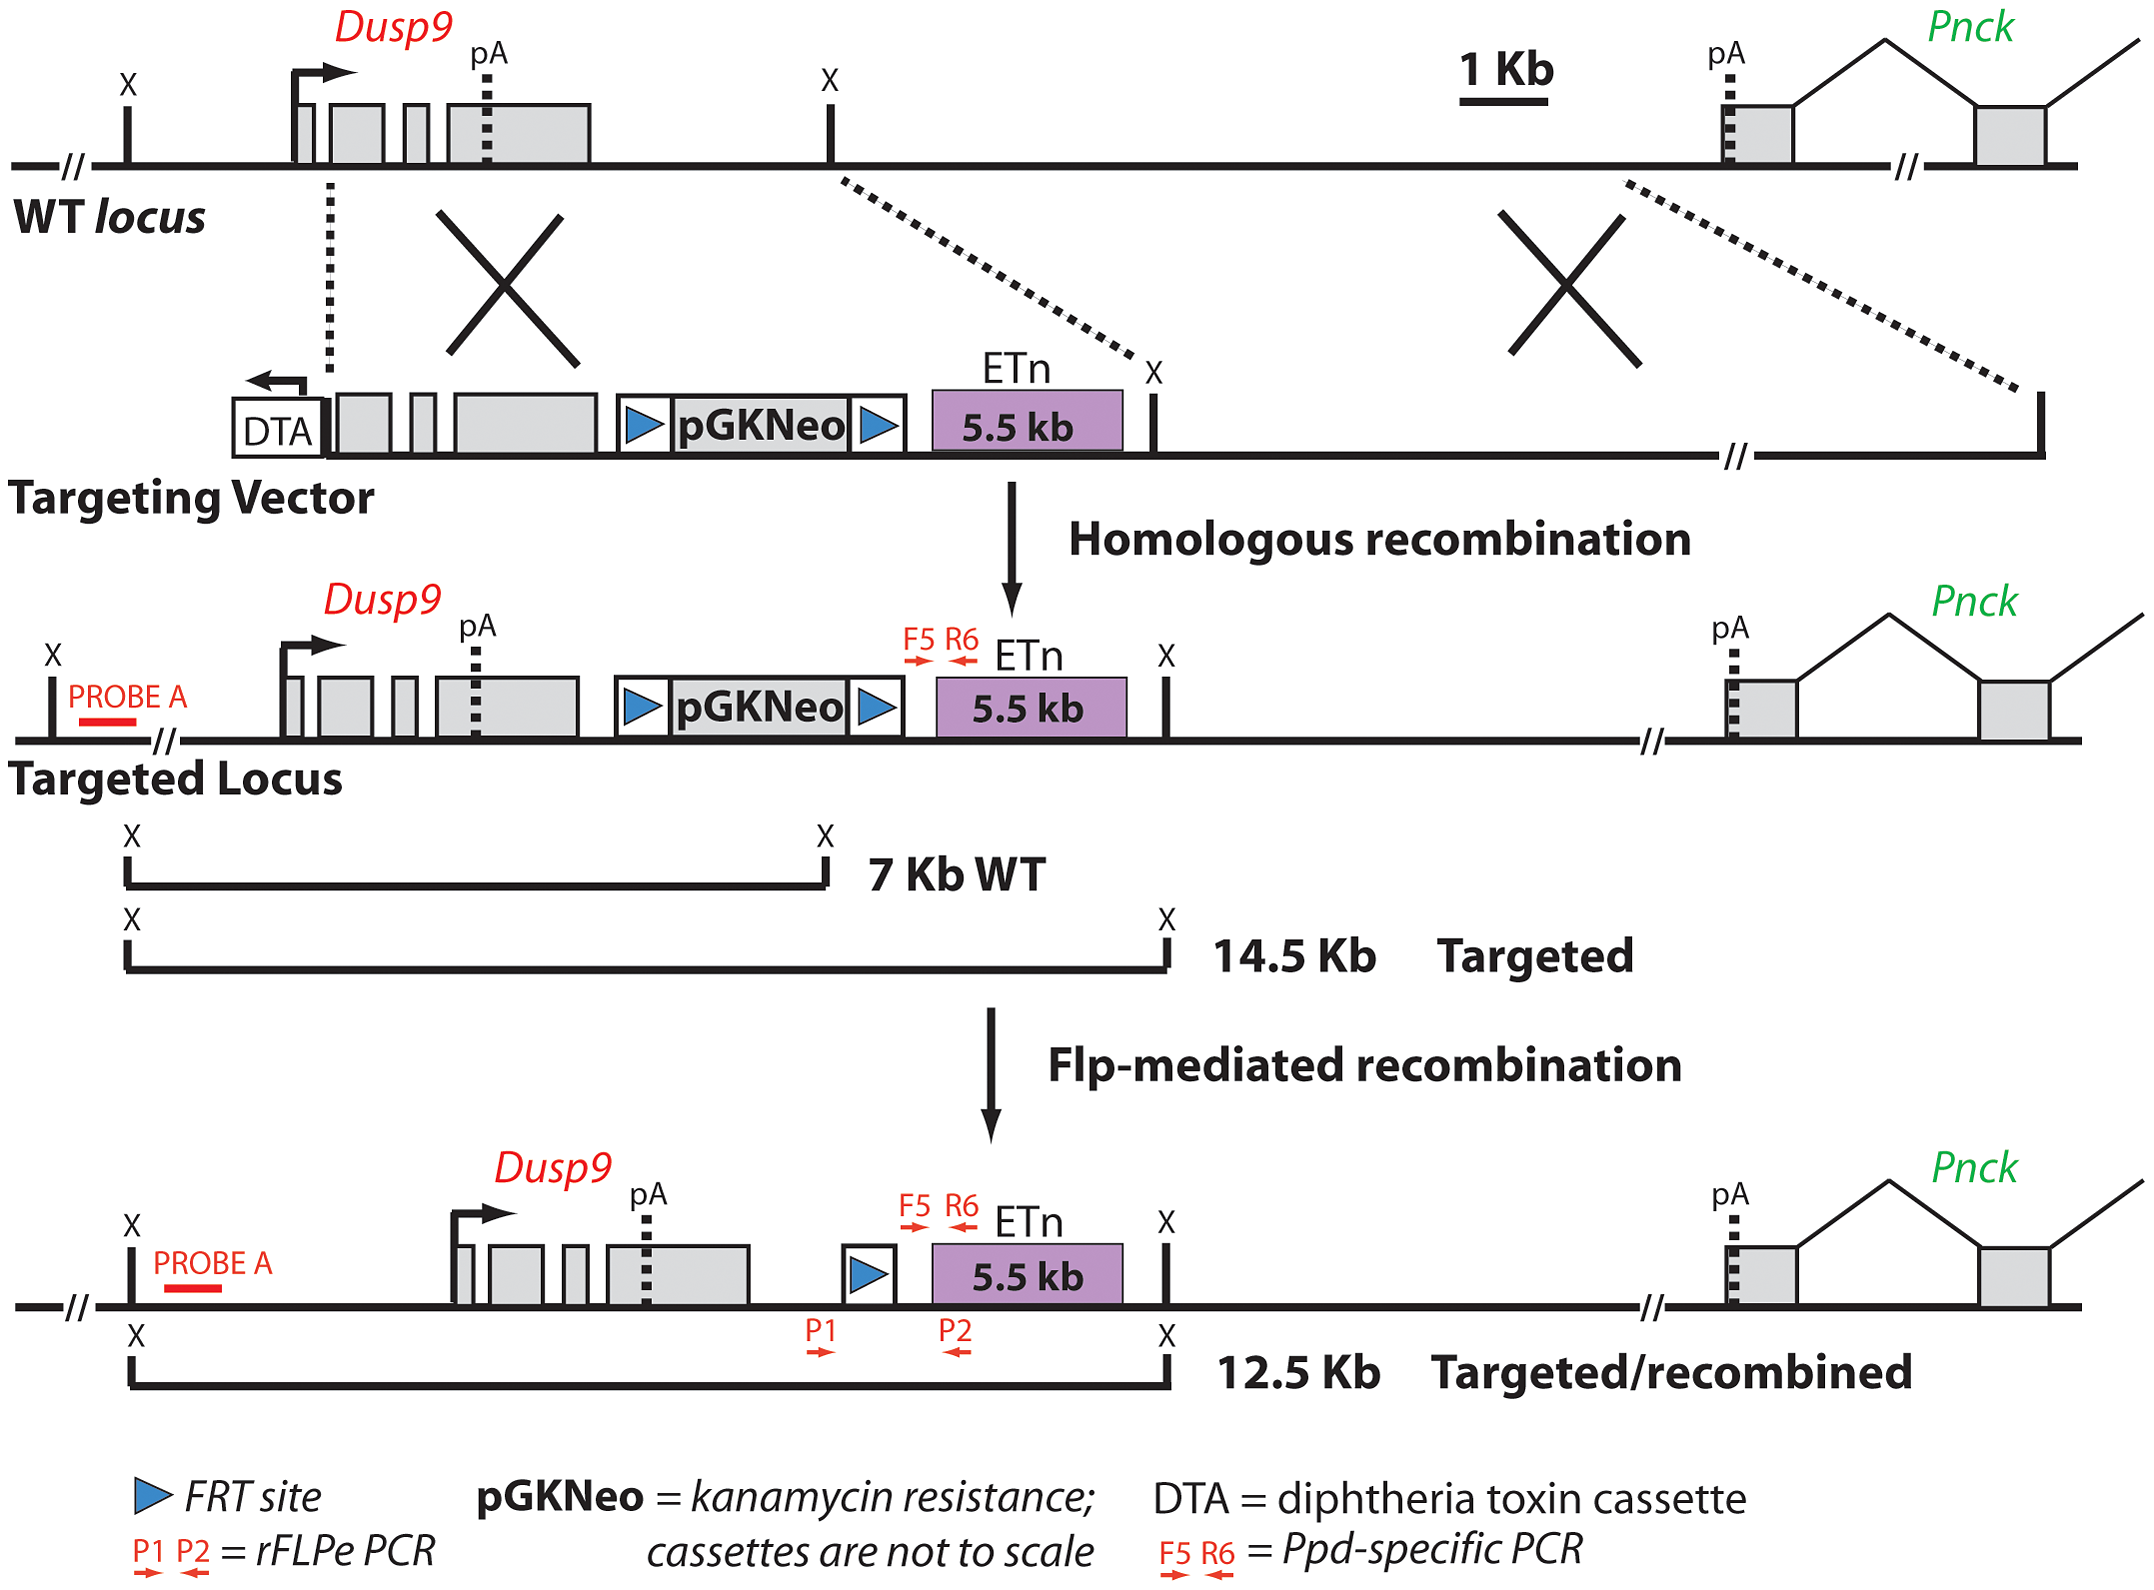 Schematic diagram of the targeting vector strategy and expected results of homologous recombination and Flp-mediated selection cassette removal.